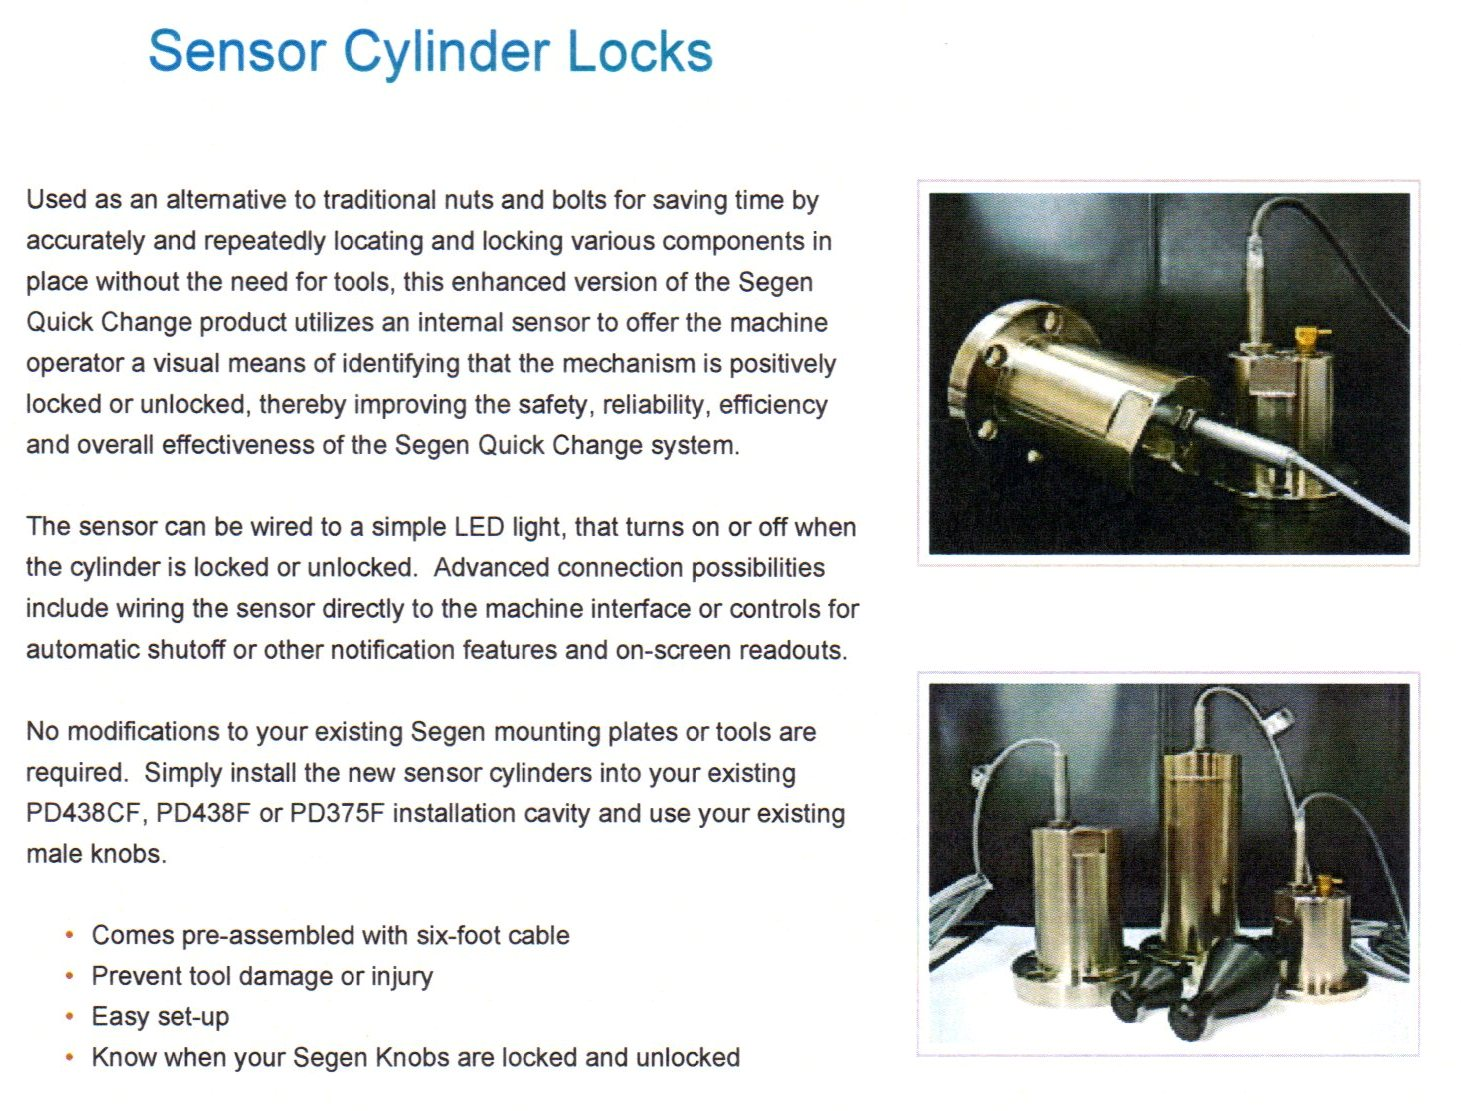 Quick Change Sensor Cylinder Locks